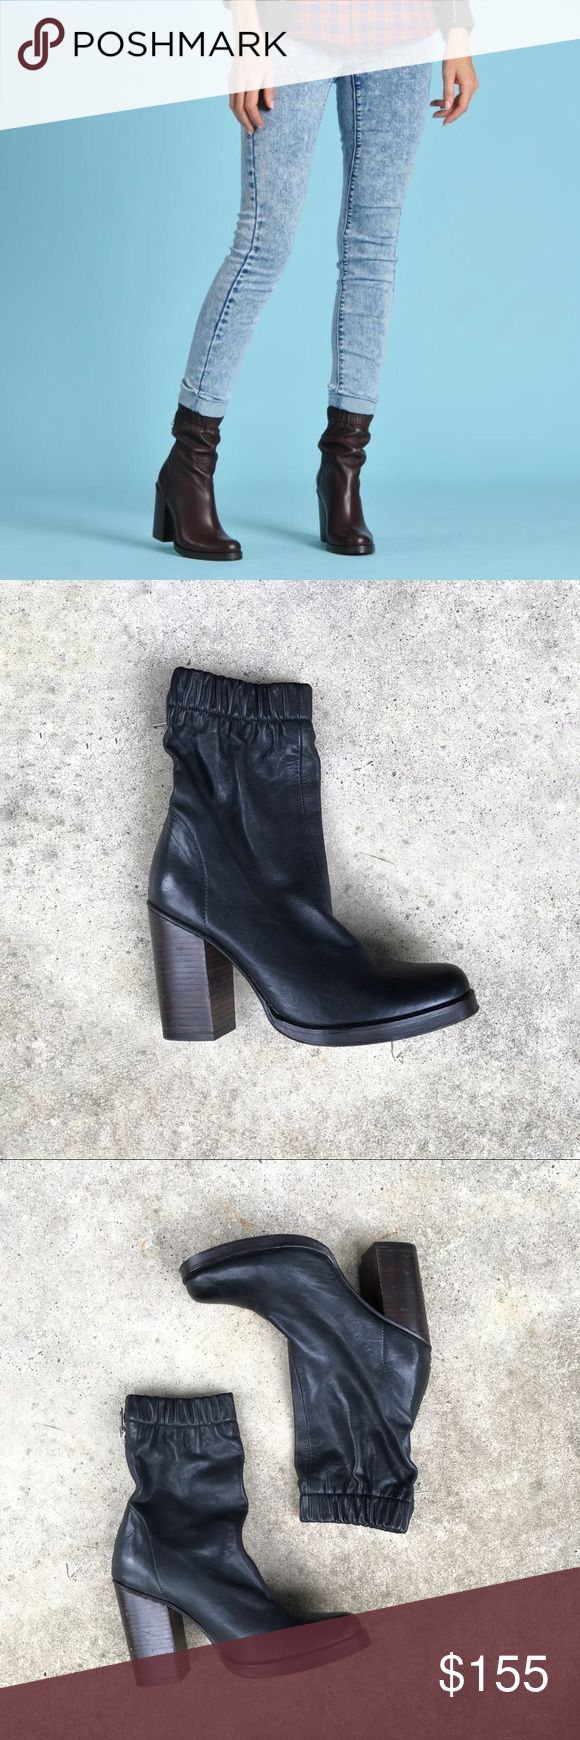 """Opening Ceremony Boots Opening Ceremony 'Lucie' mid boots. These have an elastic top and back zipper. 4"""" block heel. Black leather. Size 37.  A few scuffs on the heels, overall excellent condition. Opening Ceremony Shoes Heeled Boots"""